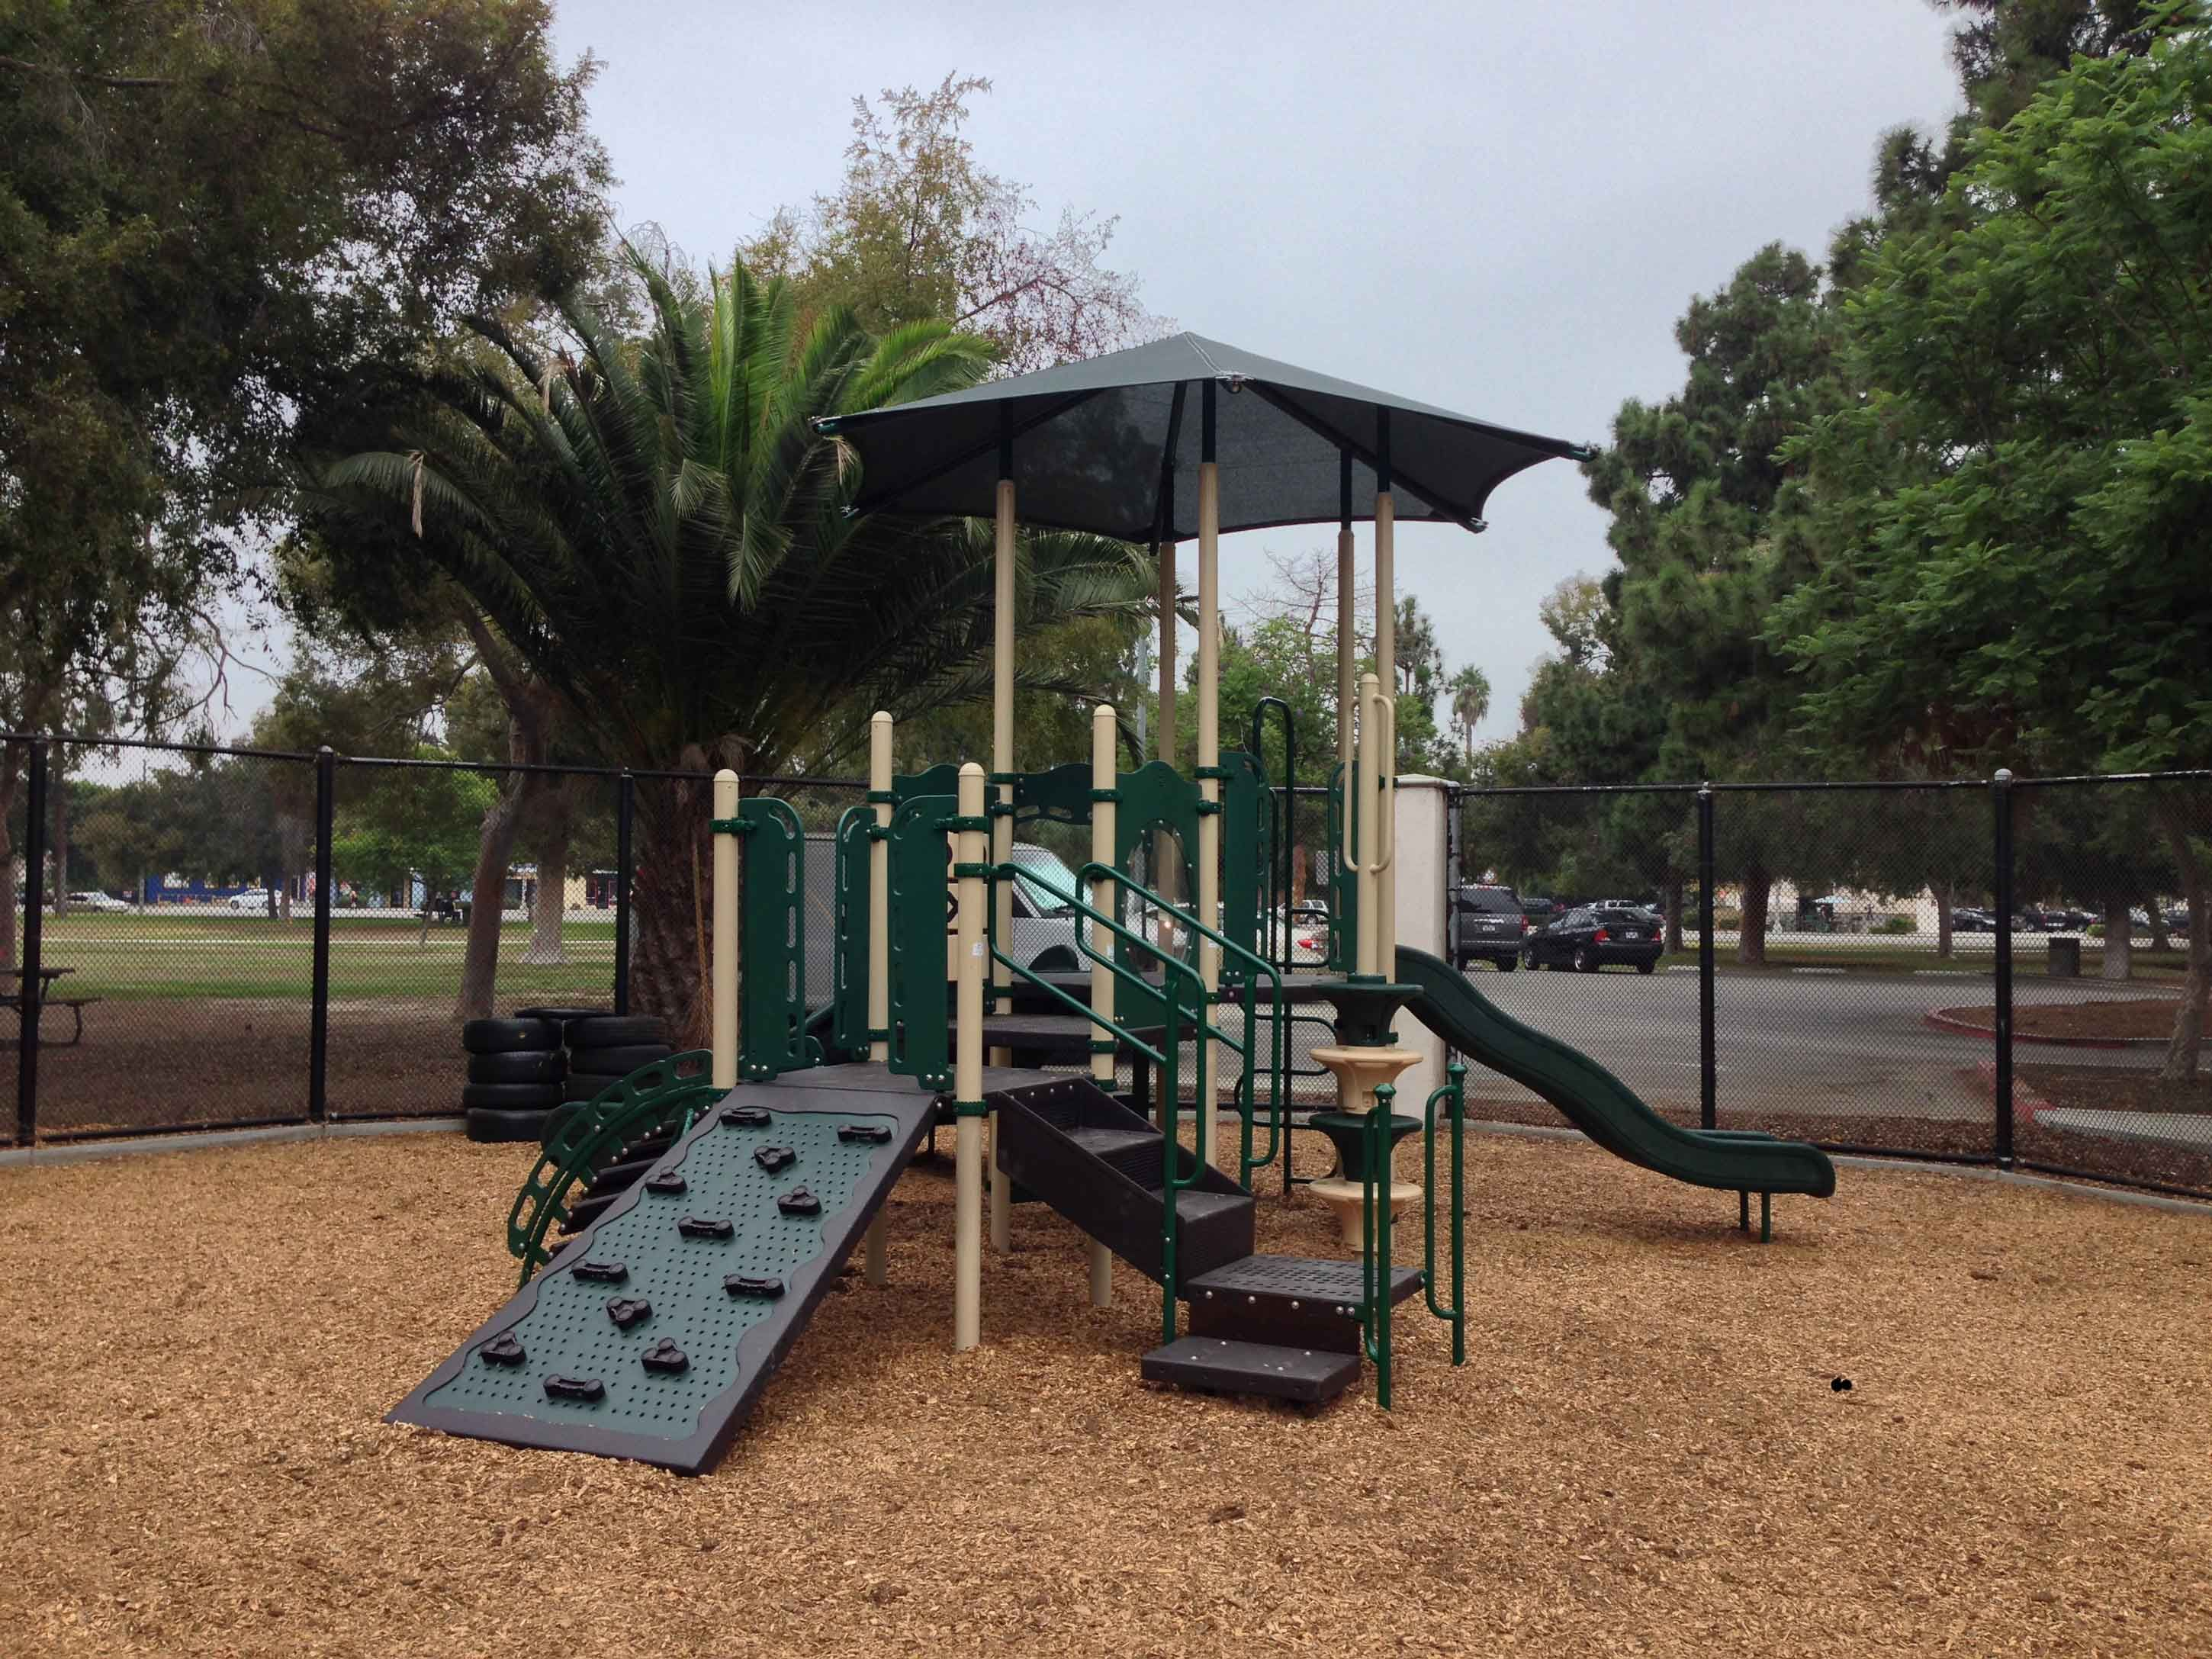 Pacific Play S Completed Project At Long Beach Day Nursery In California